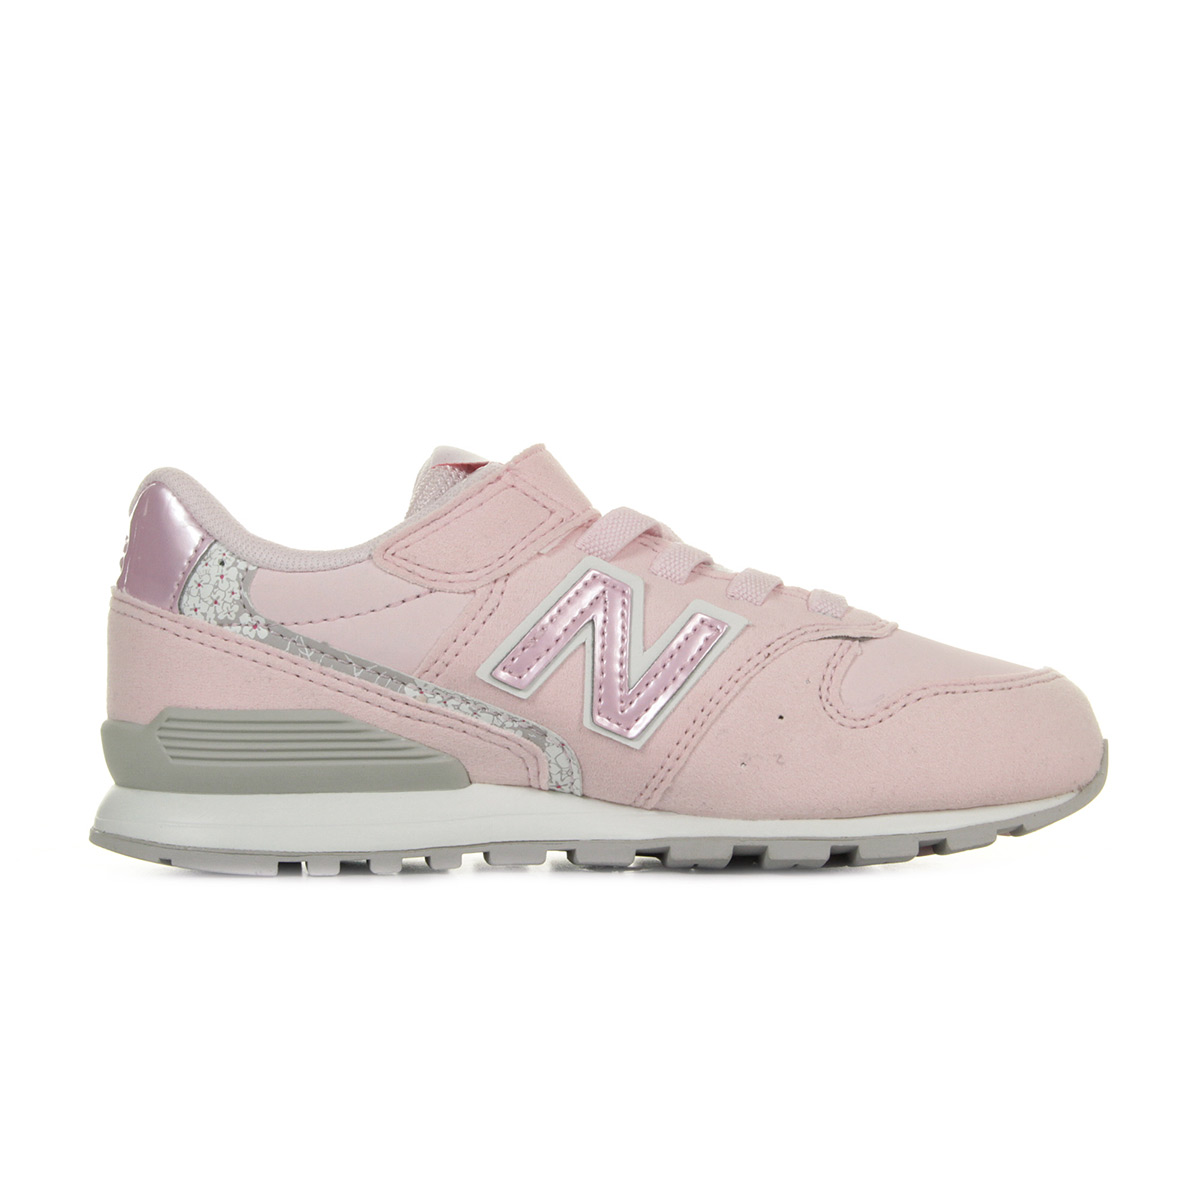 Chaussures Baskets New Balance fille KV996F1Y taille Rose Textile ... 30a80f20453b